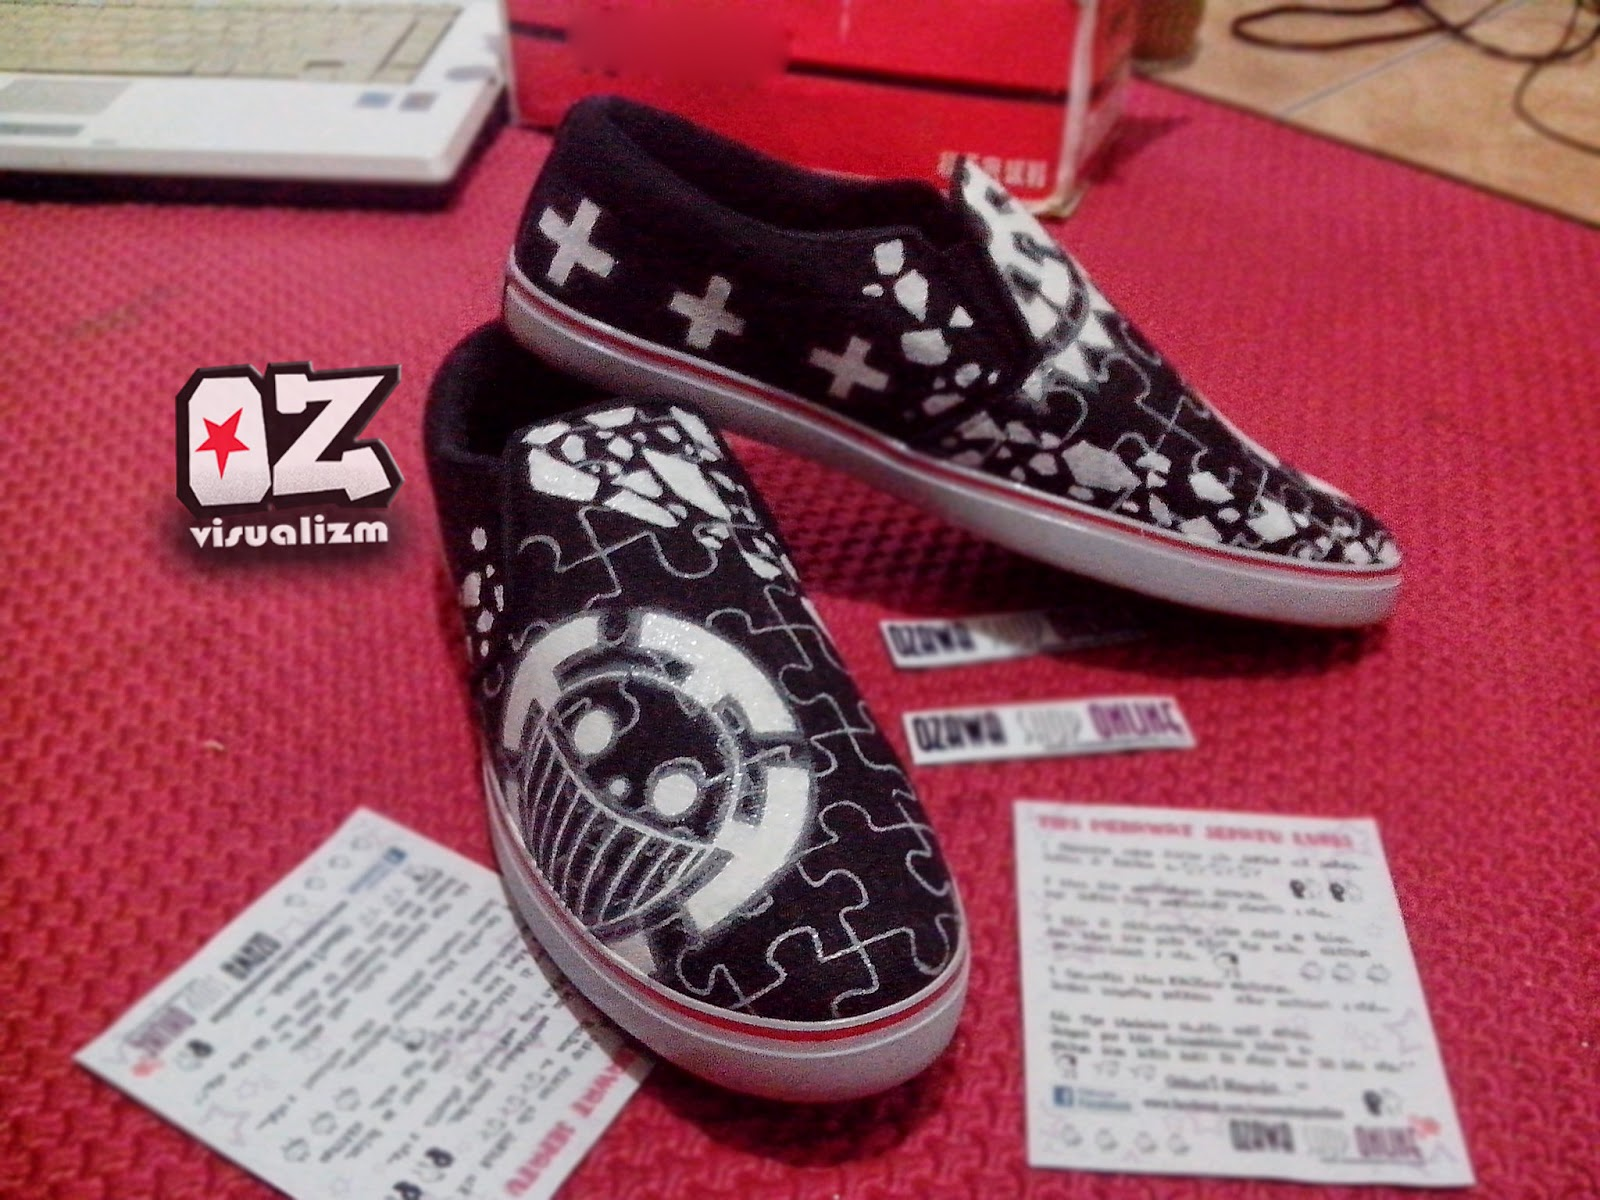 Ozawa Visualizm online shopz  SEPATU LUKIS LAW ( ONE PIECE ) 48b5afe756